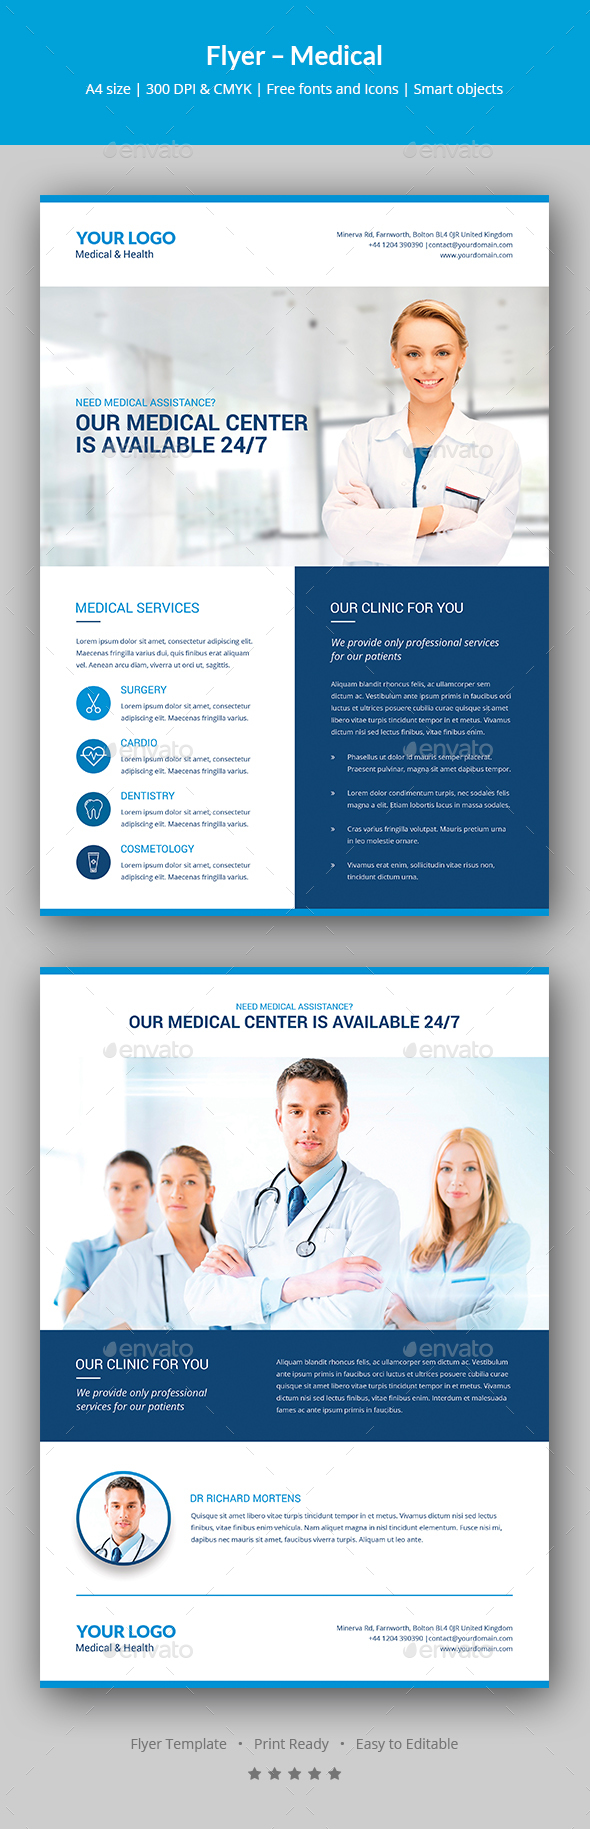 Flyer – Medical - Corporate Flyers